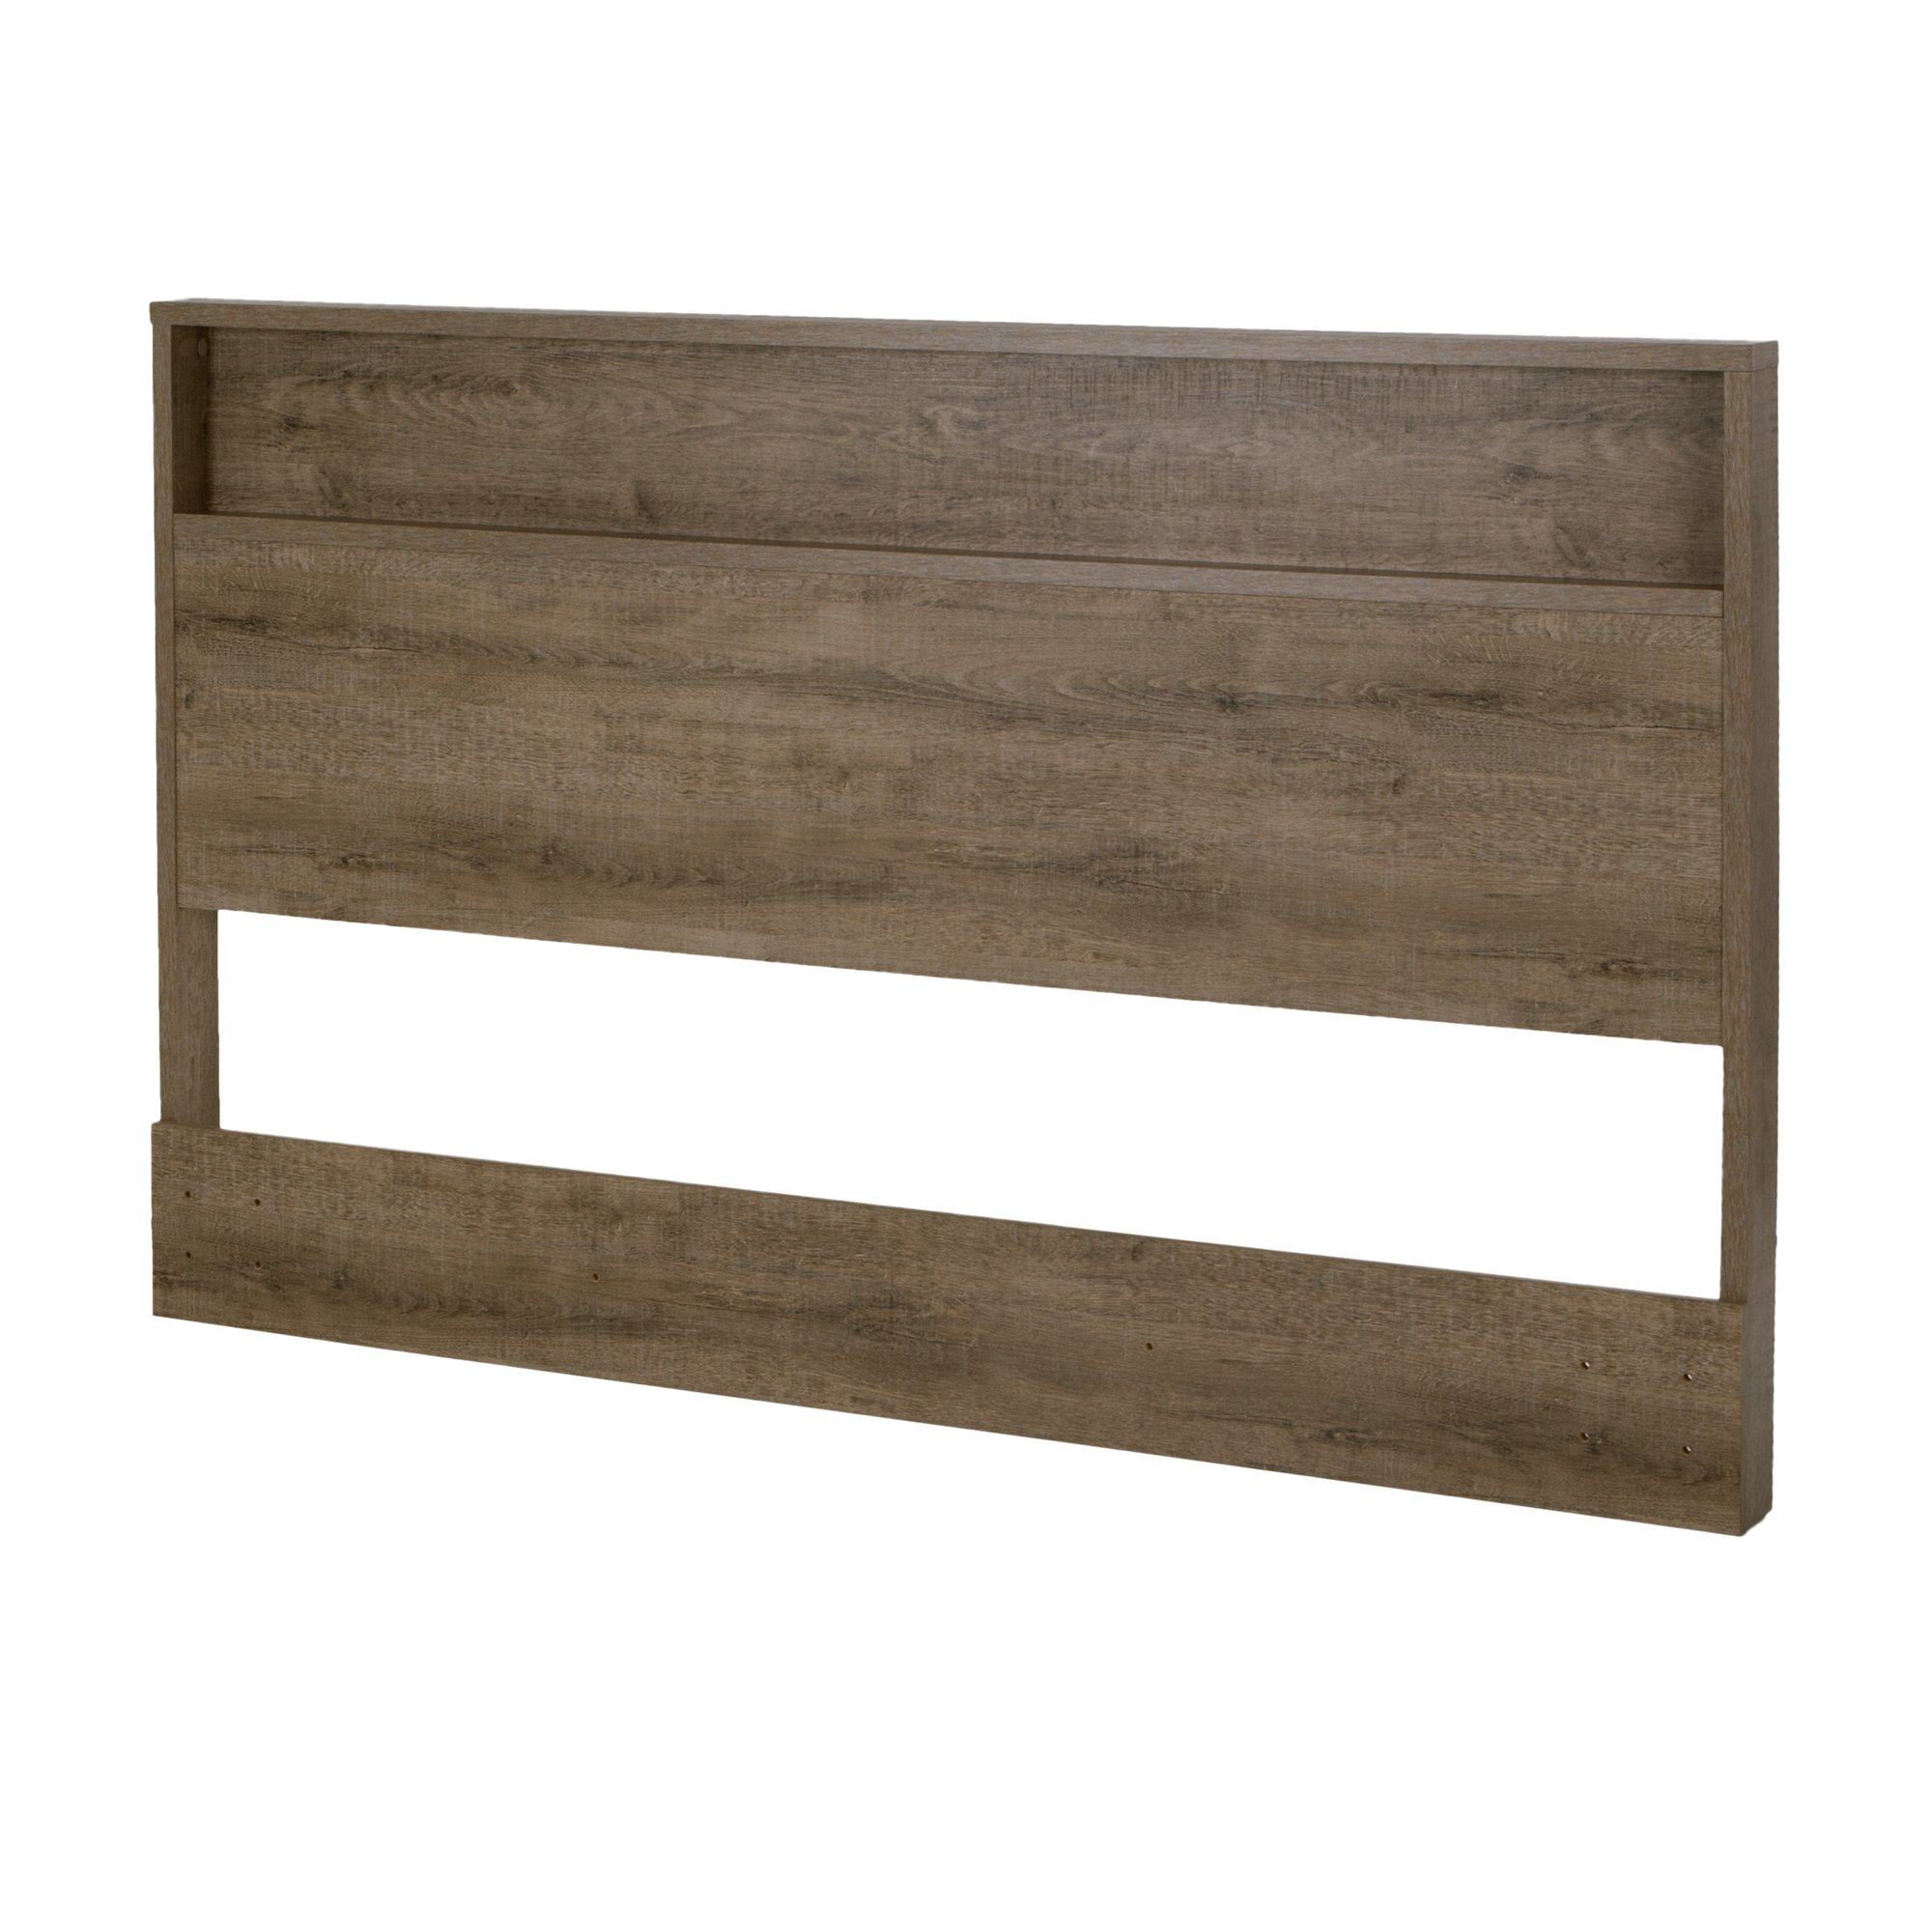 South Shore Holland Headboard with Shelf, Full/Queen 54/60-Inch, Weathered Oak by South Shore